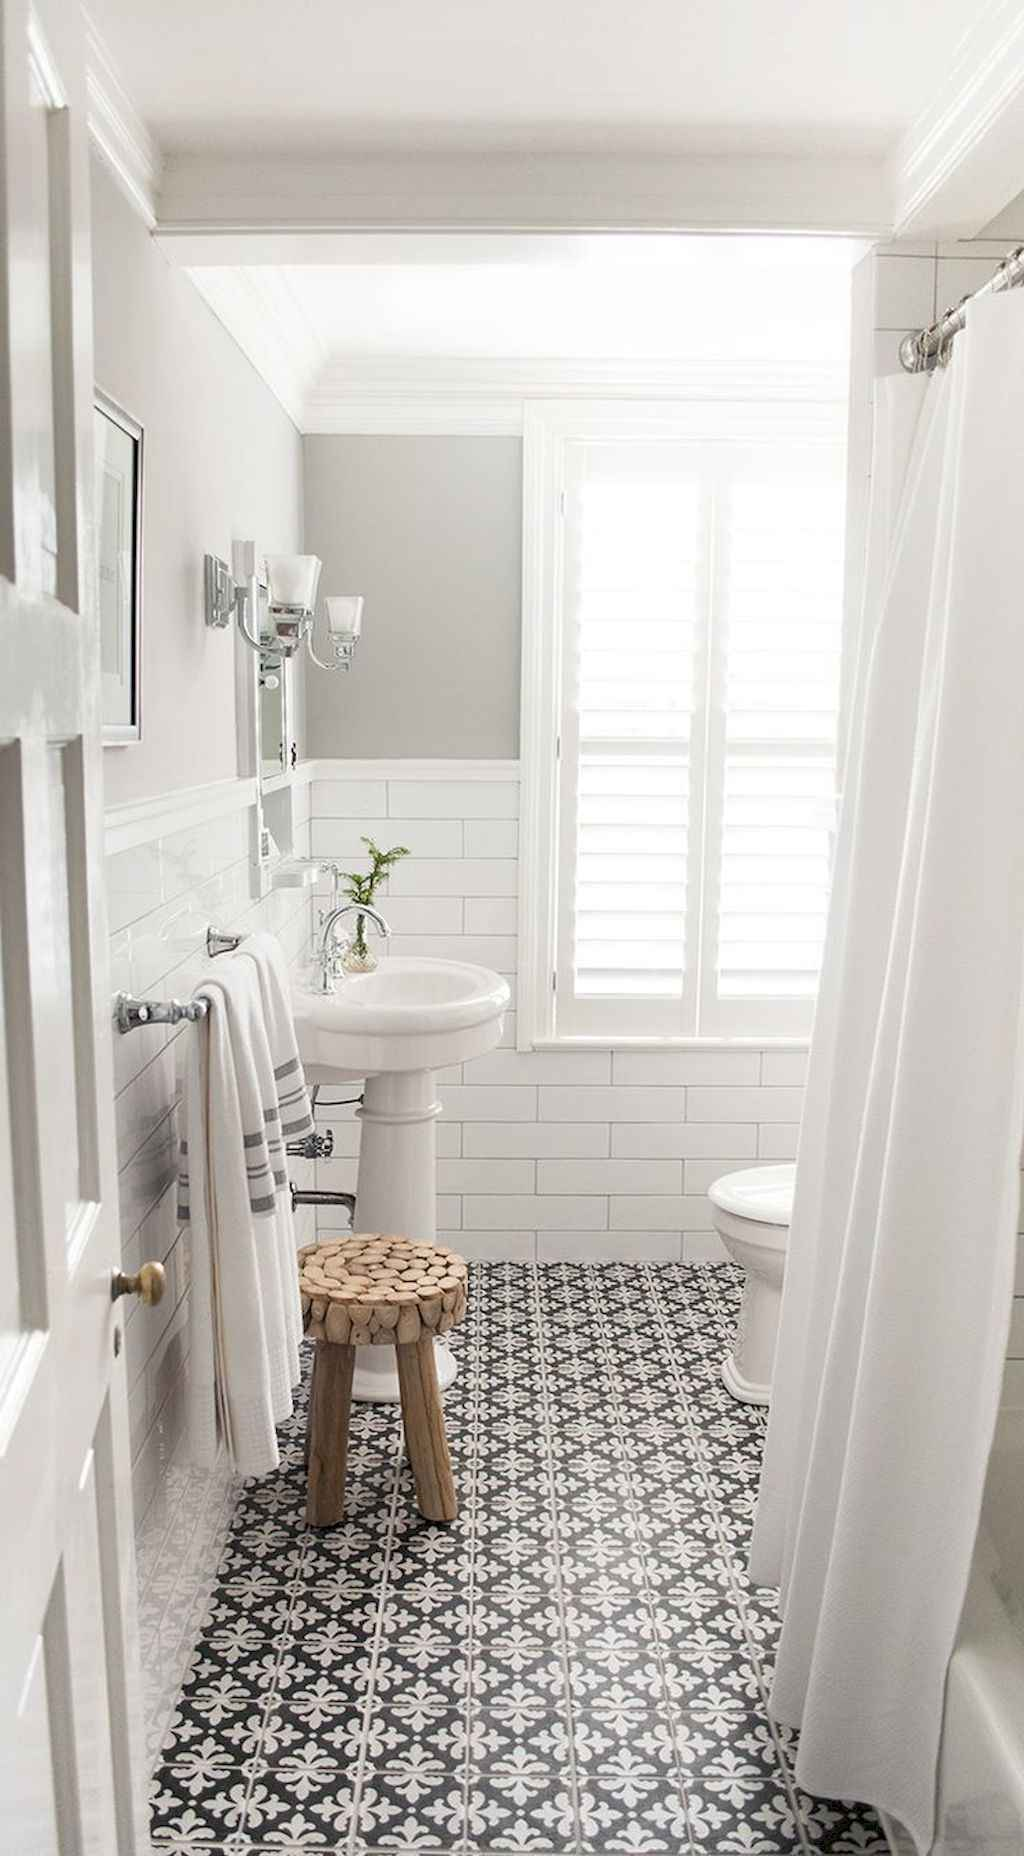 111 awesome small bathroom remodel ideas on a budget (18 ...